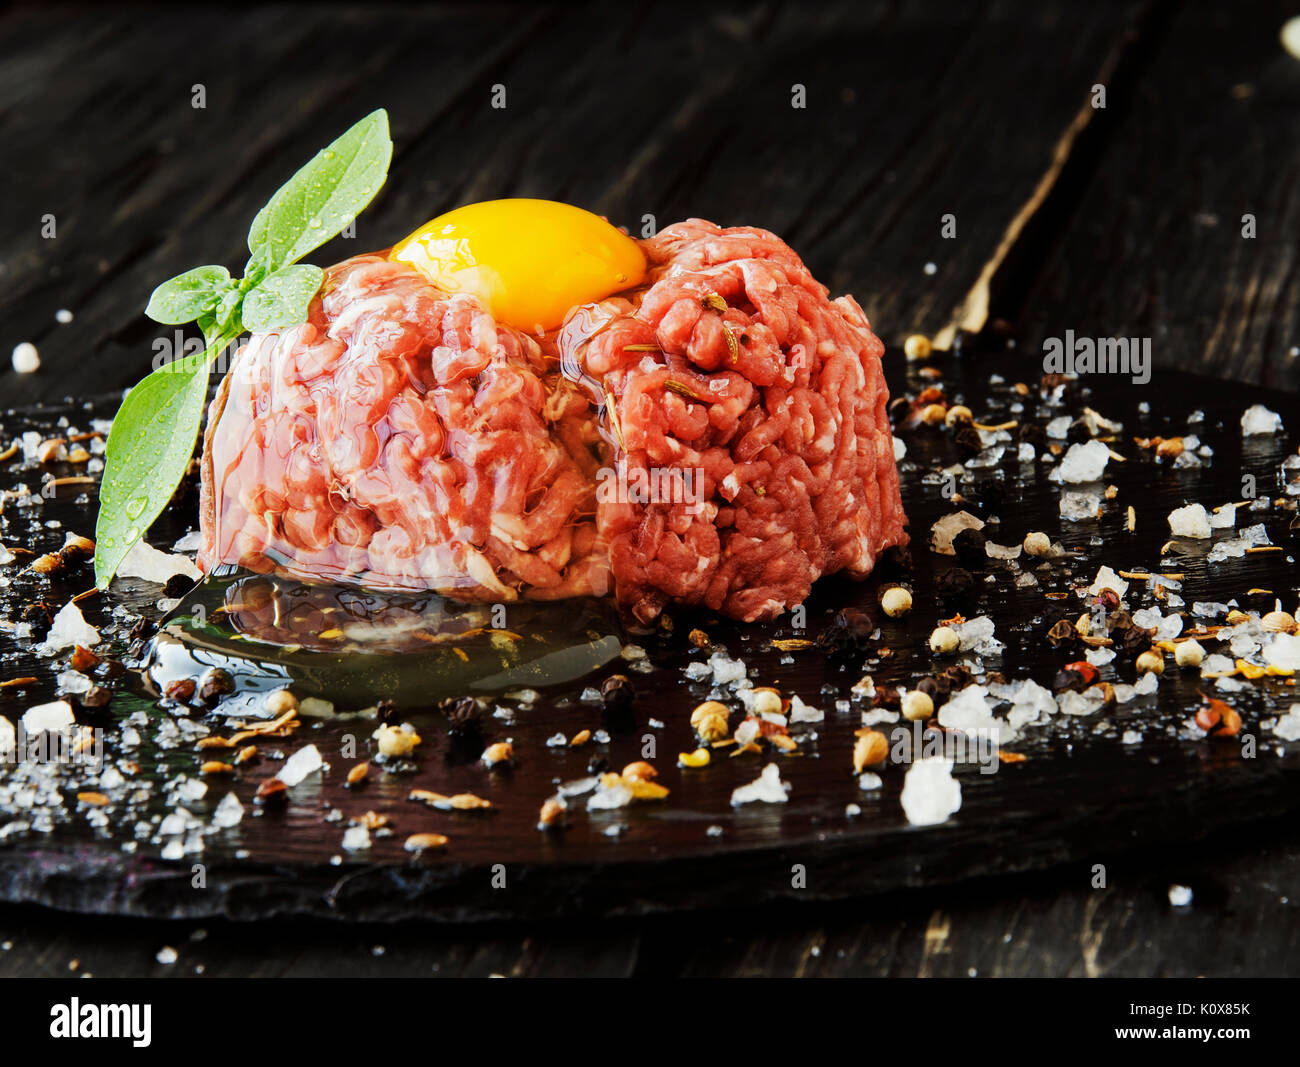 raw minced meat, vegetables with salt and spices, on a black background, selective focus, space for text - Stock Image